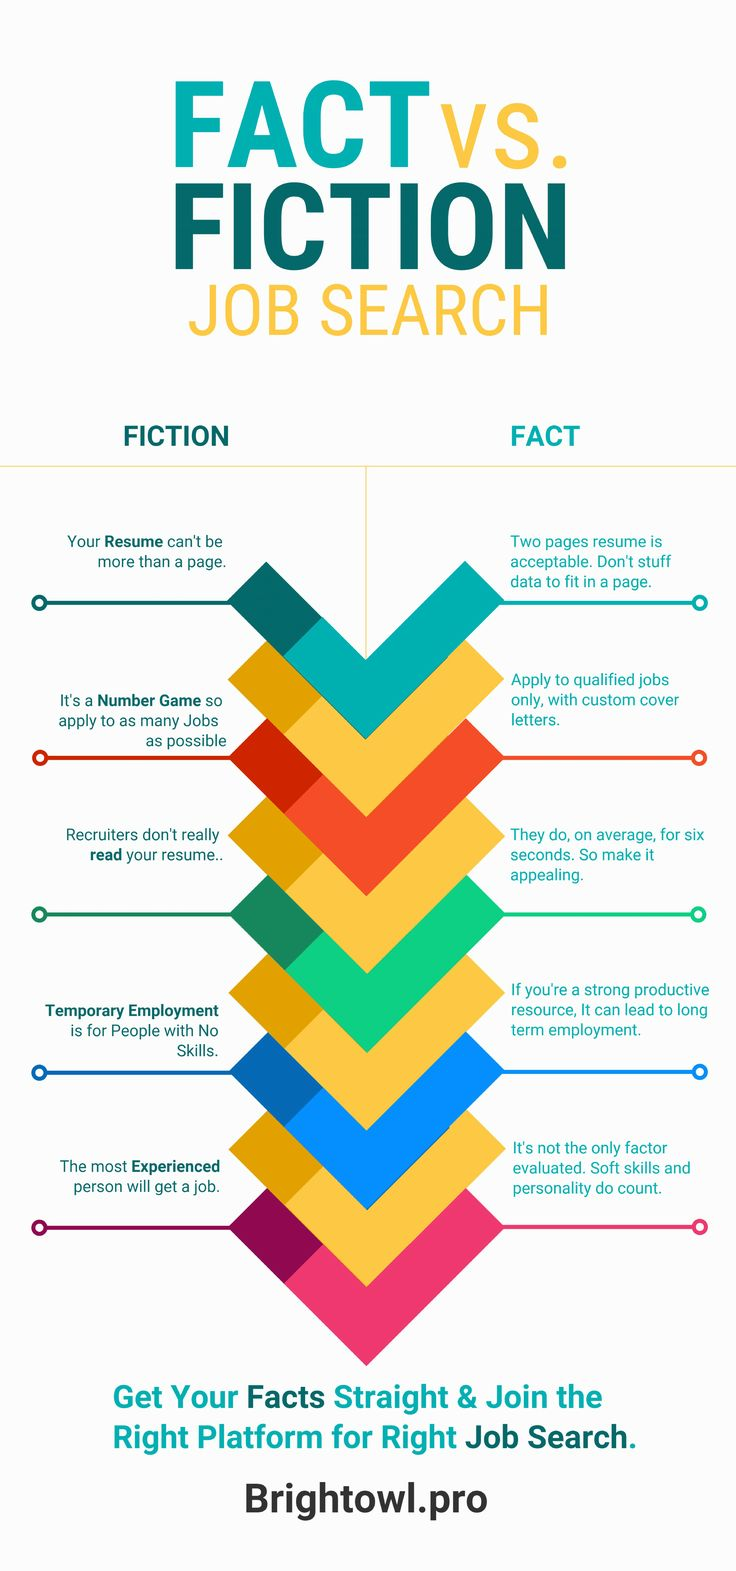 There are certain #myths about #jobsearch. These are actually fictions which has nothing to do with #facts. #job is not a number #game. Only applying to qualified jobs will be good #strategy. #Recruiters do read your #resume, on average, for 6 seconds and it can be more than a page if needed. That's a #misconceptions that #temporary #employment is for people with no #skills & #experience. Another #fiction is only the most #experienced person will get a job. #softskills also counts.